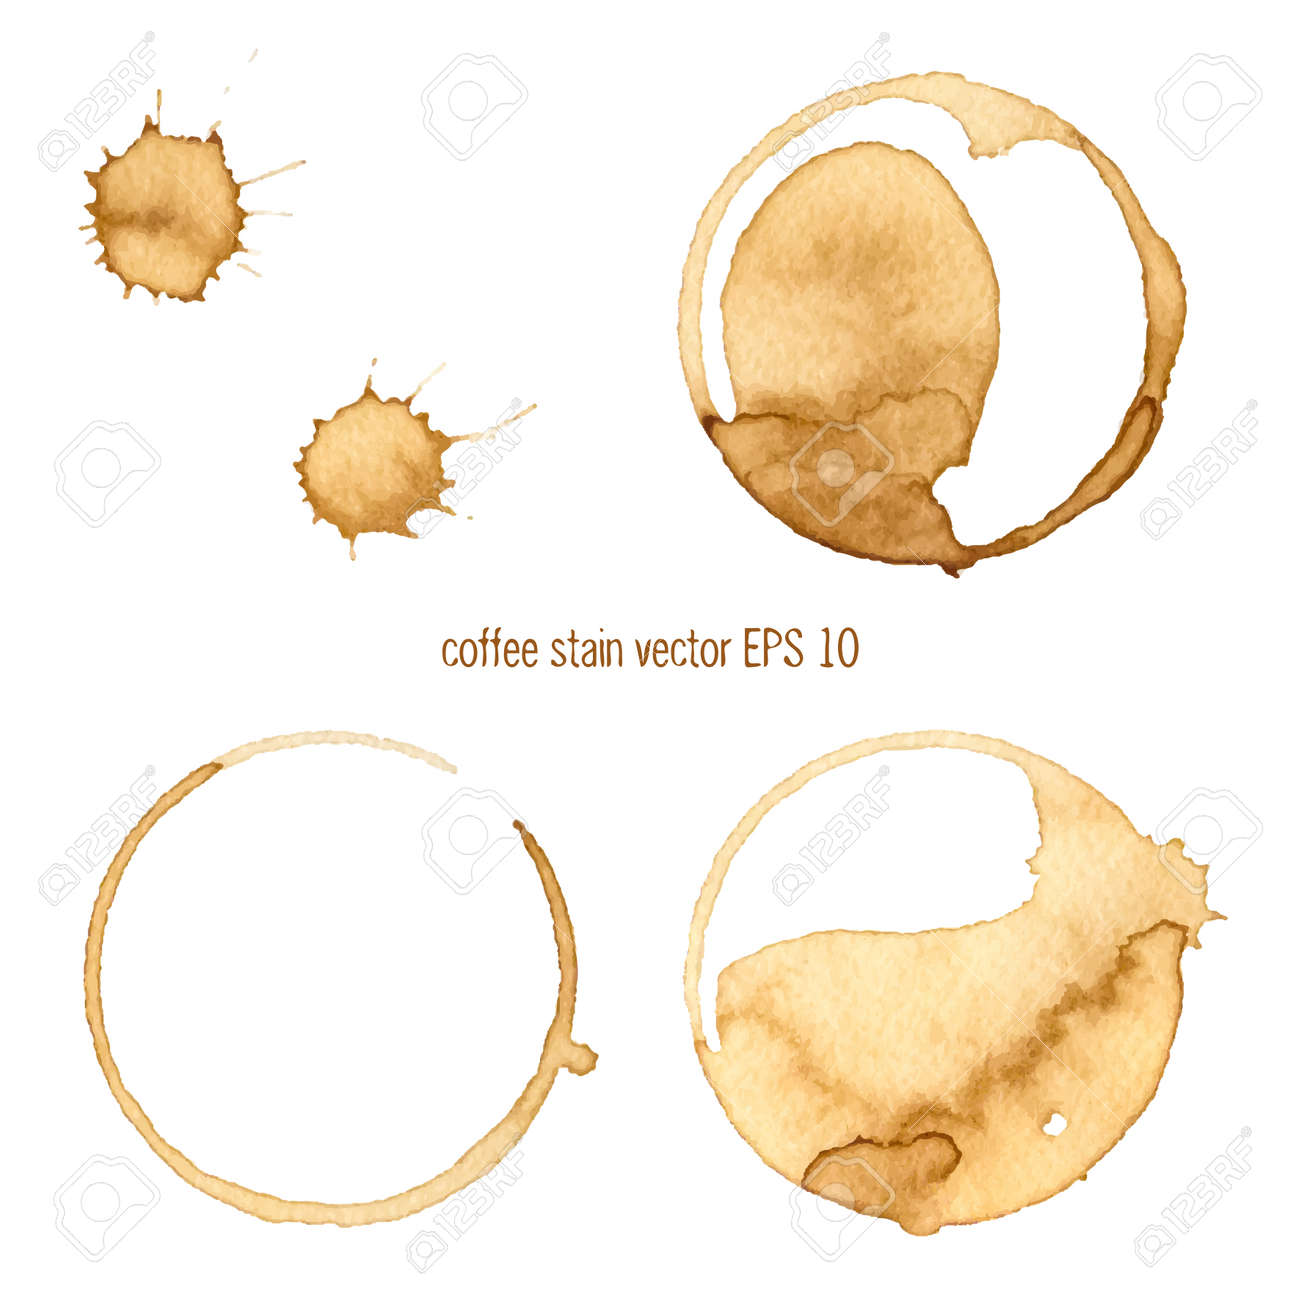 Coffee Stain, Isolated On White Background. Collection of circle various coffee stains isolated on white background - 35036043